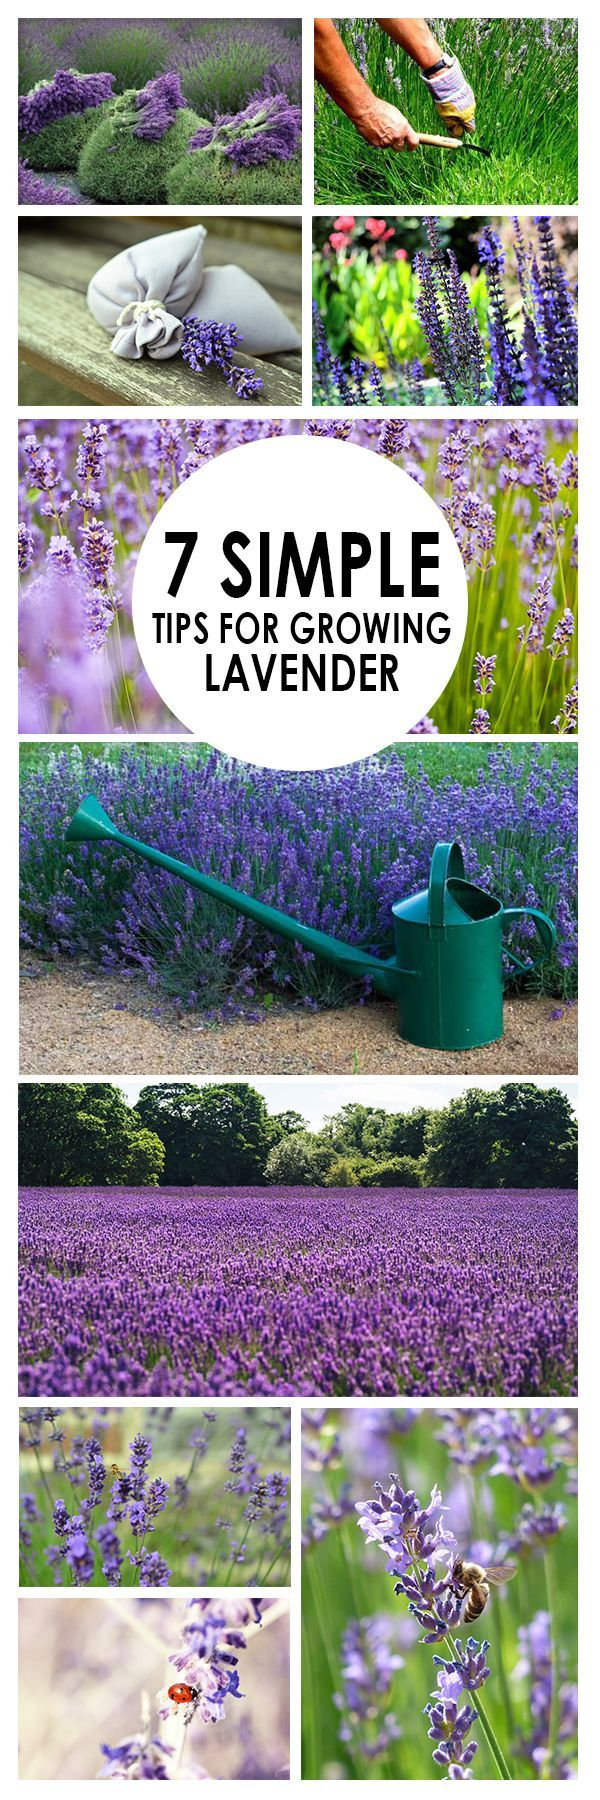 Lavender, how to grow lavender, lavender growing tips, outdoor living…